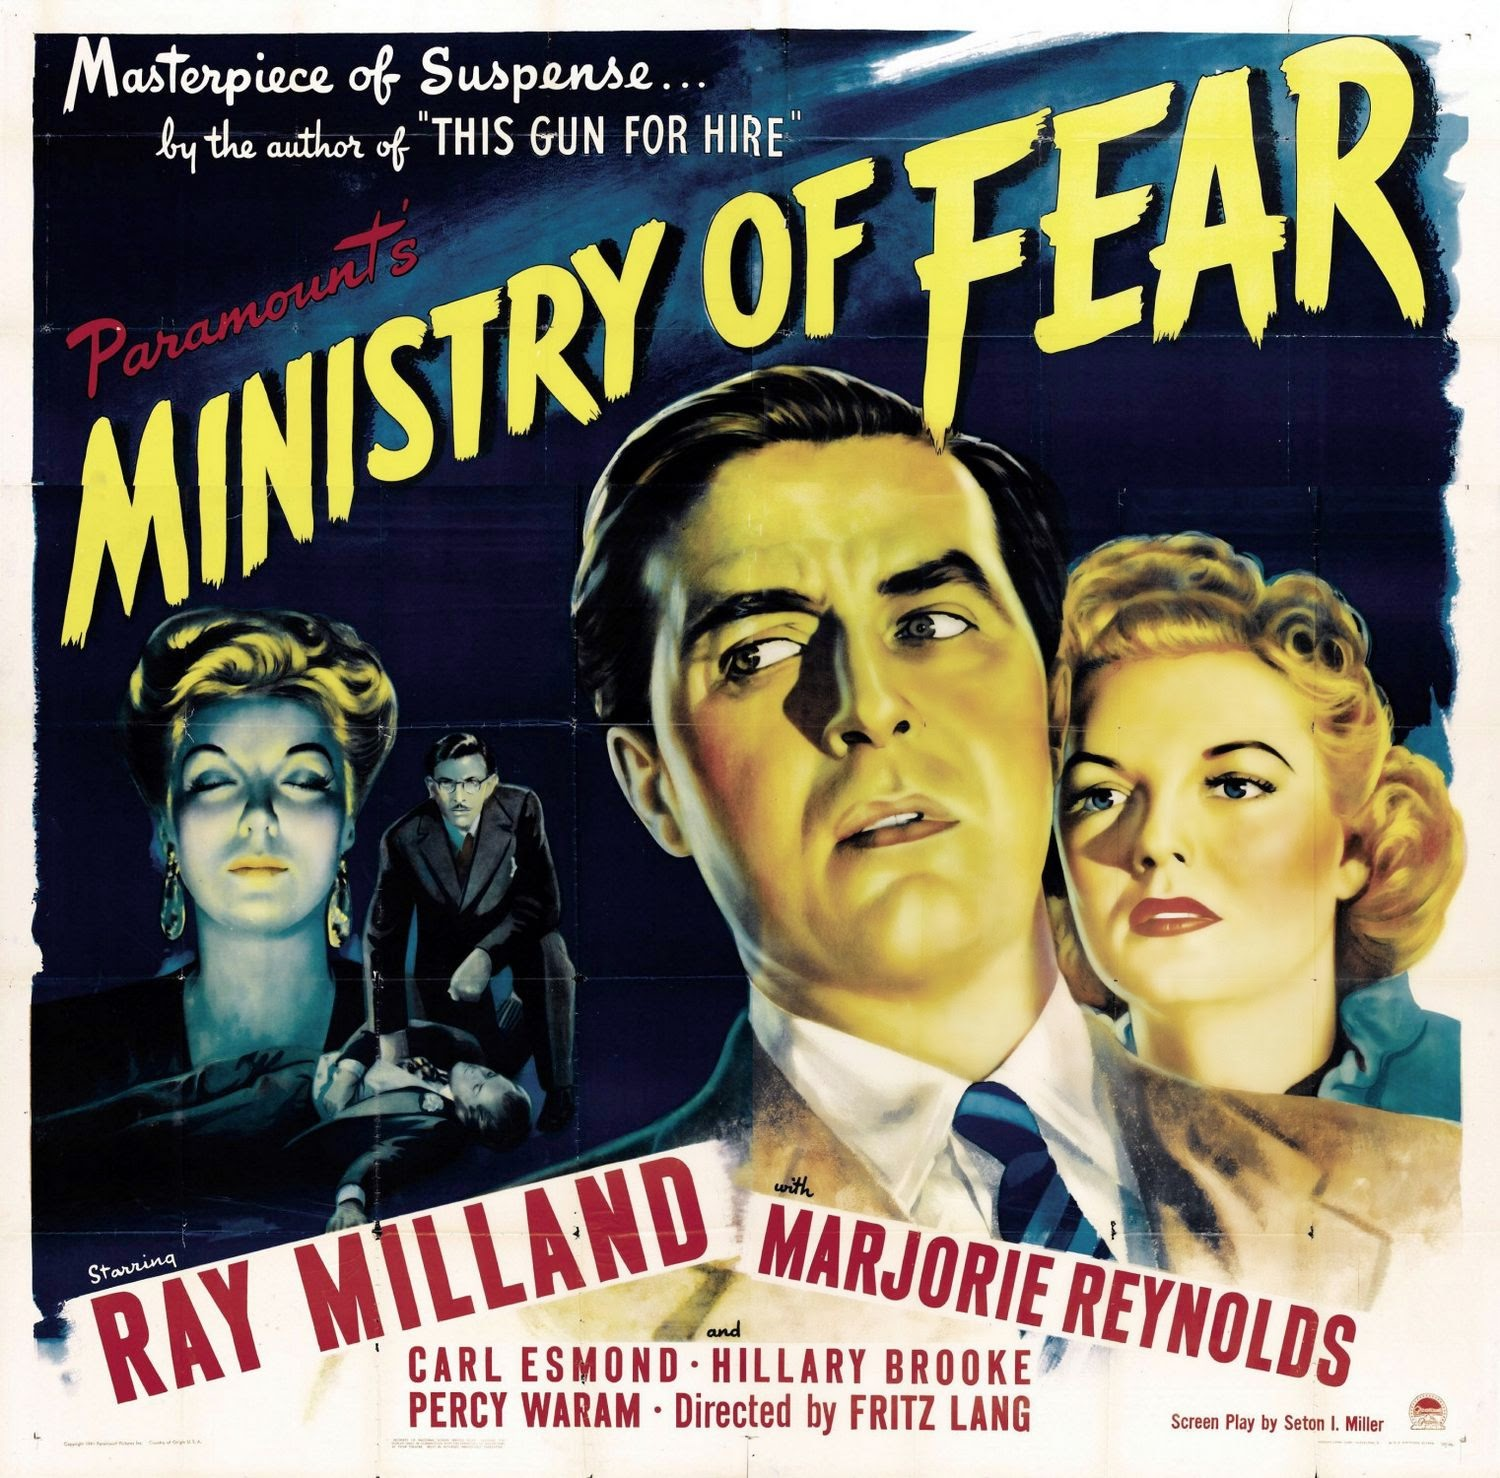 ART & ARTISTS: Film Posters 1940s Movie Posters 1940s